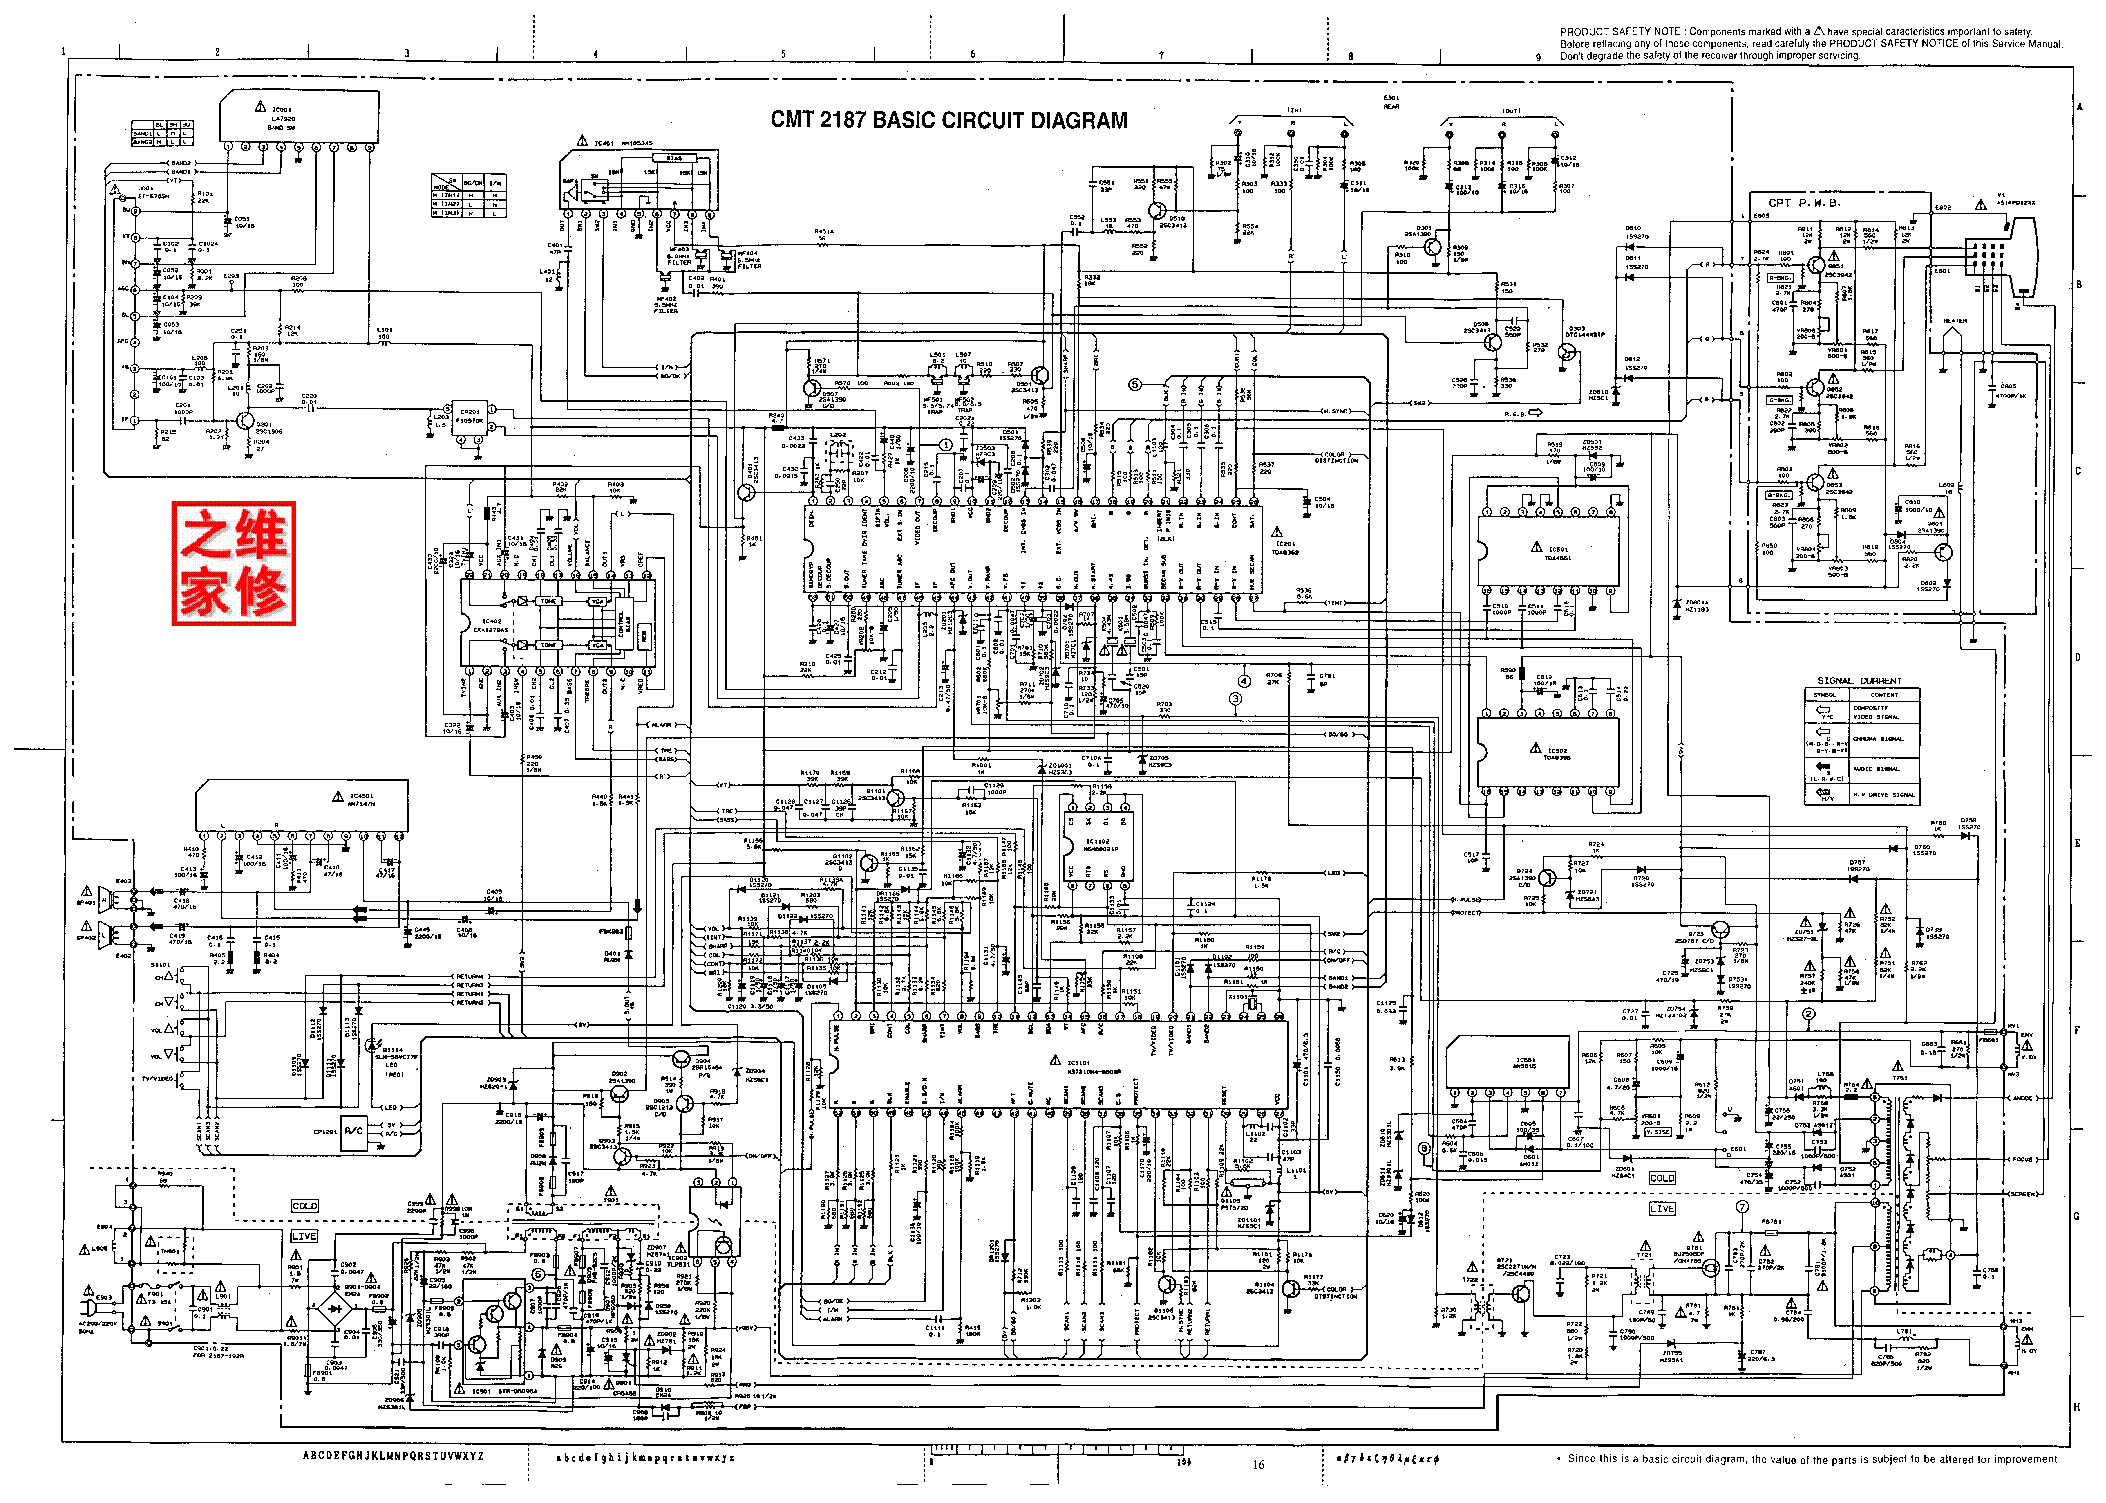 Electronic Circuit Diagrams Pdf Wiring Electronics Book Hitachi Cmt2187 Basic Diagram 1 Service Manual Ballast